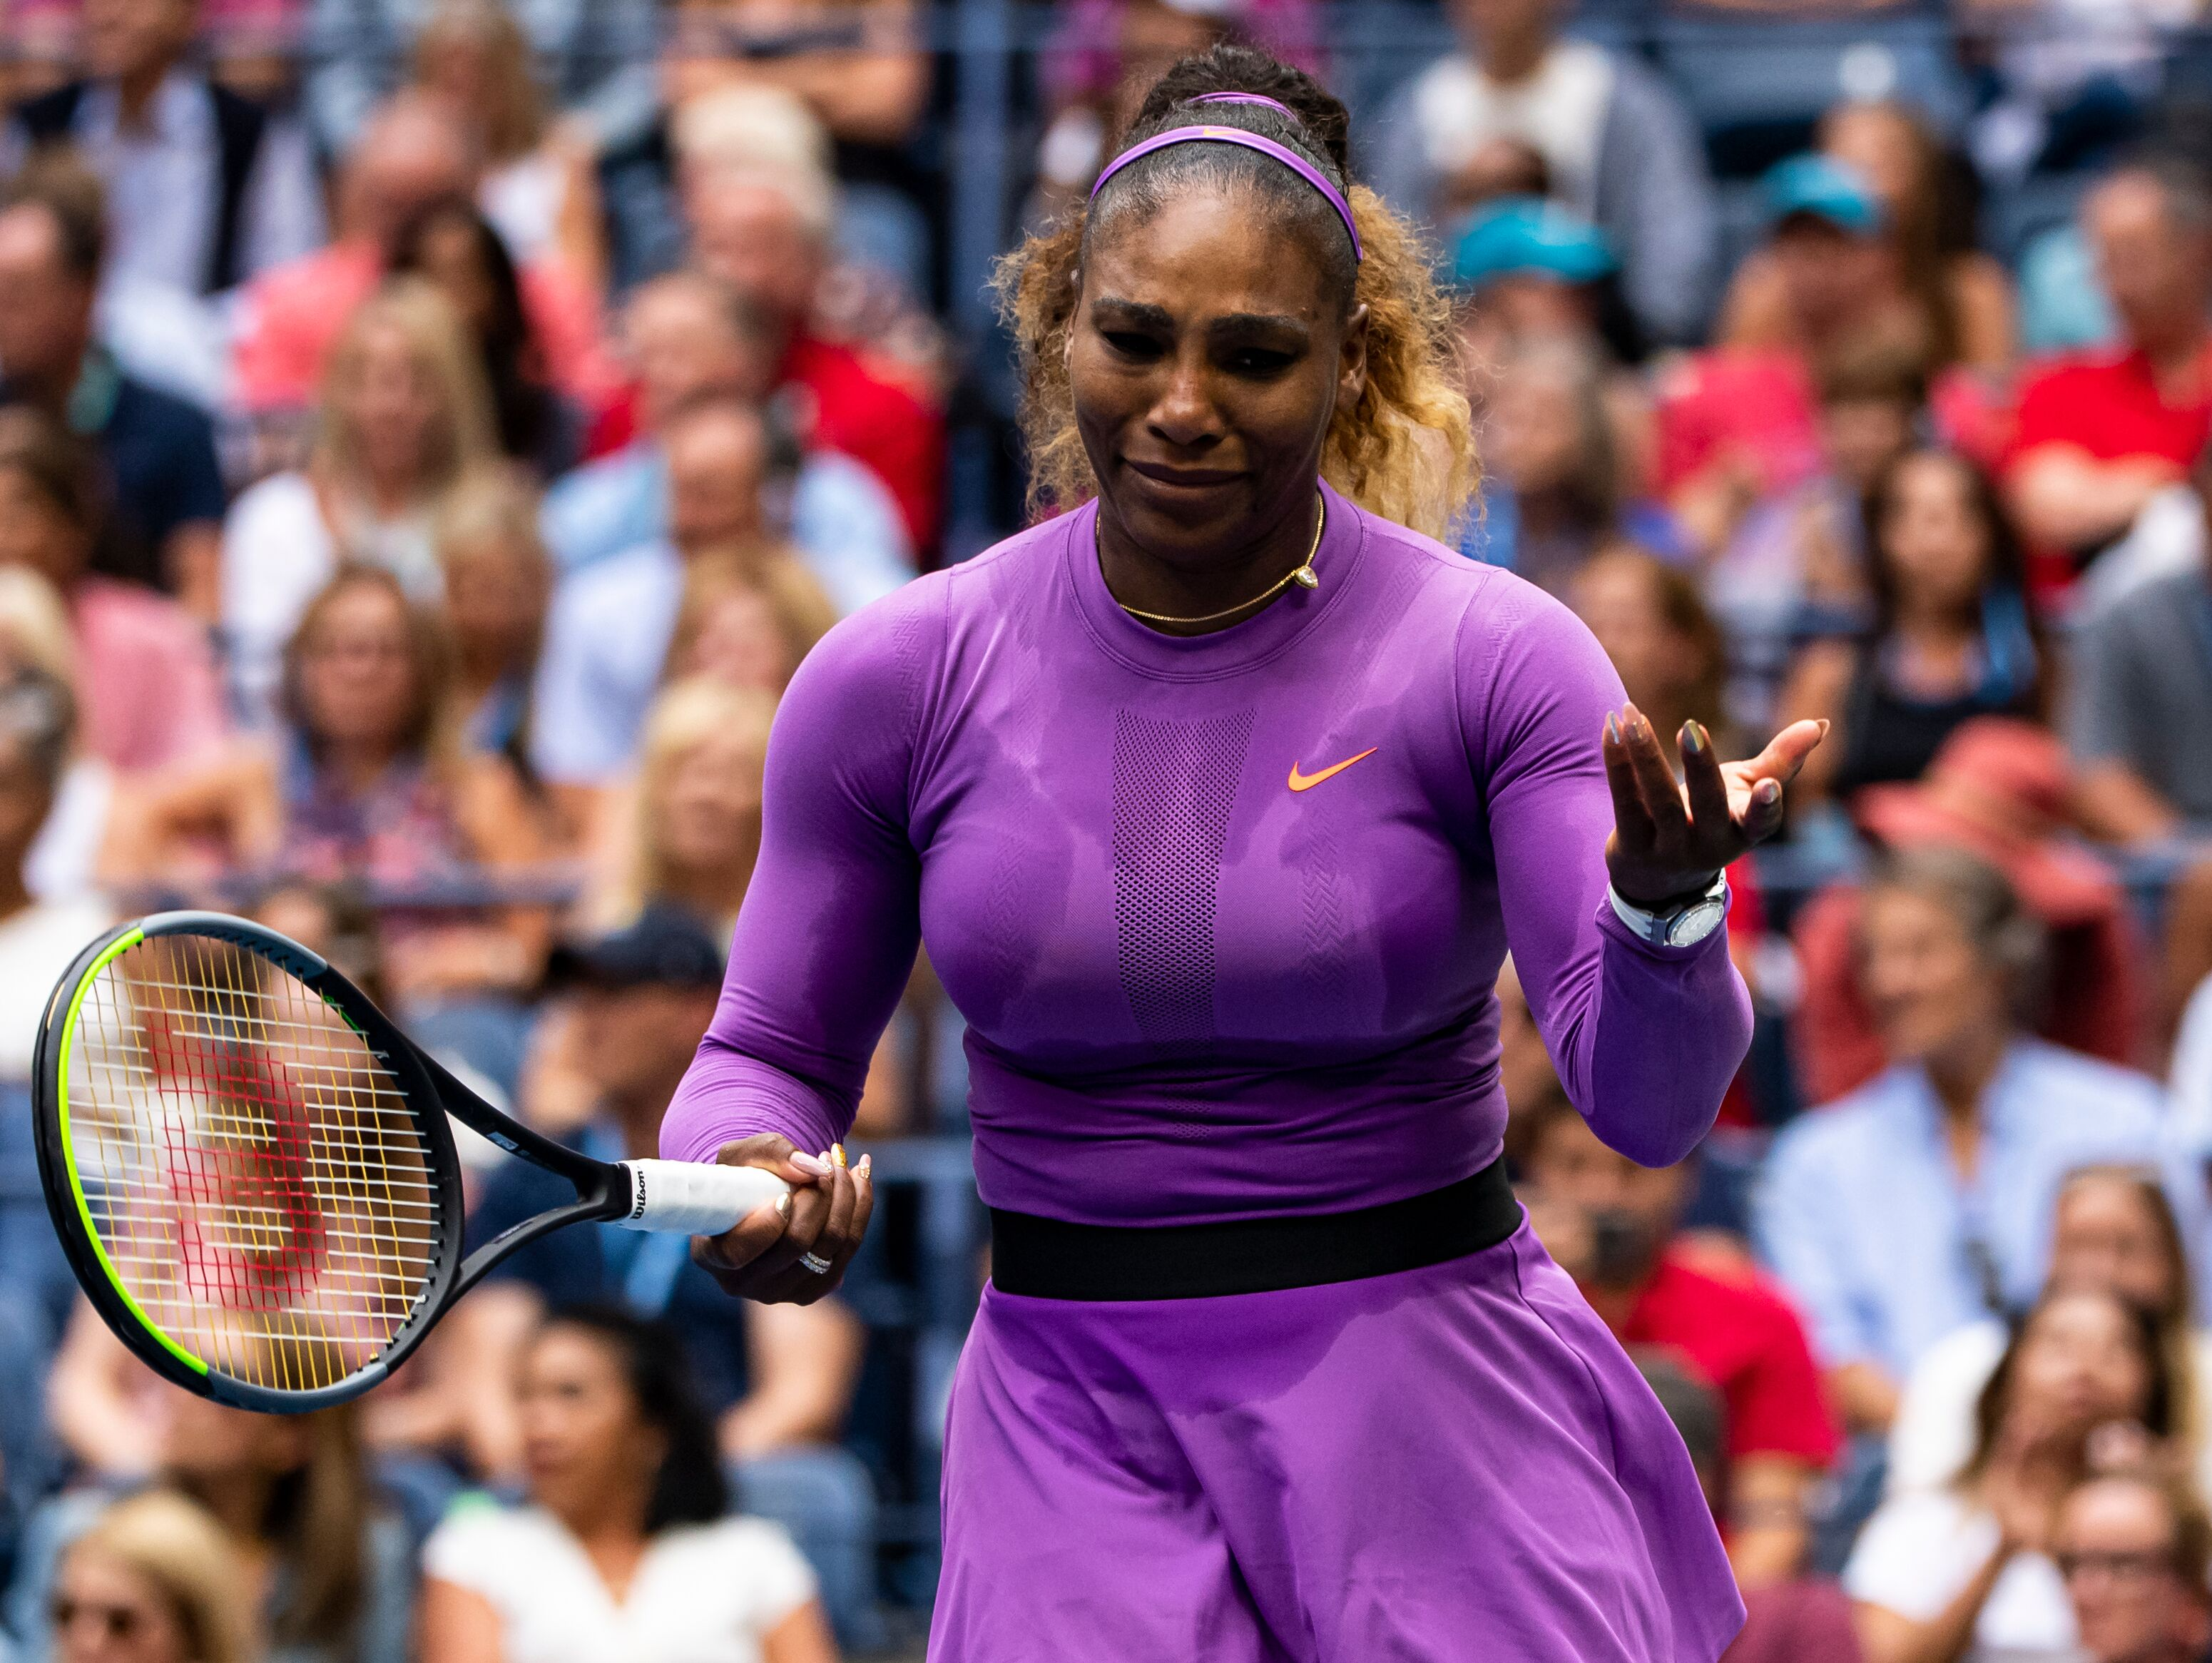 Serena Wiliams during her match against Bianca Andreescu at the US Open Finals Match   Source: Getty Images / GlobalImagesUkraine